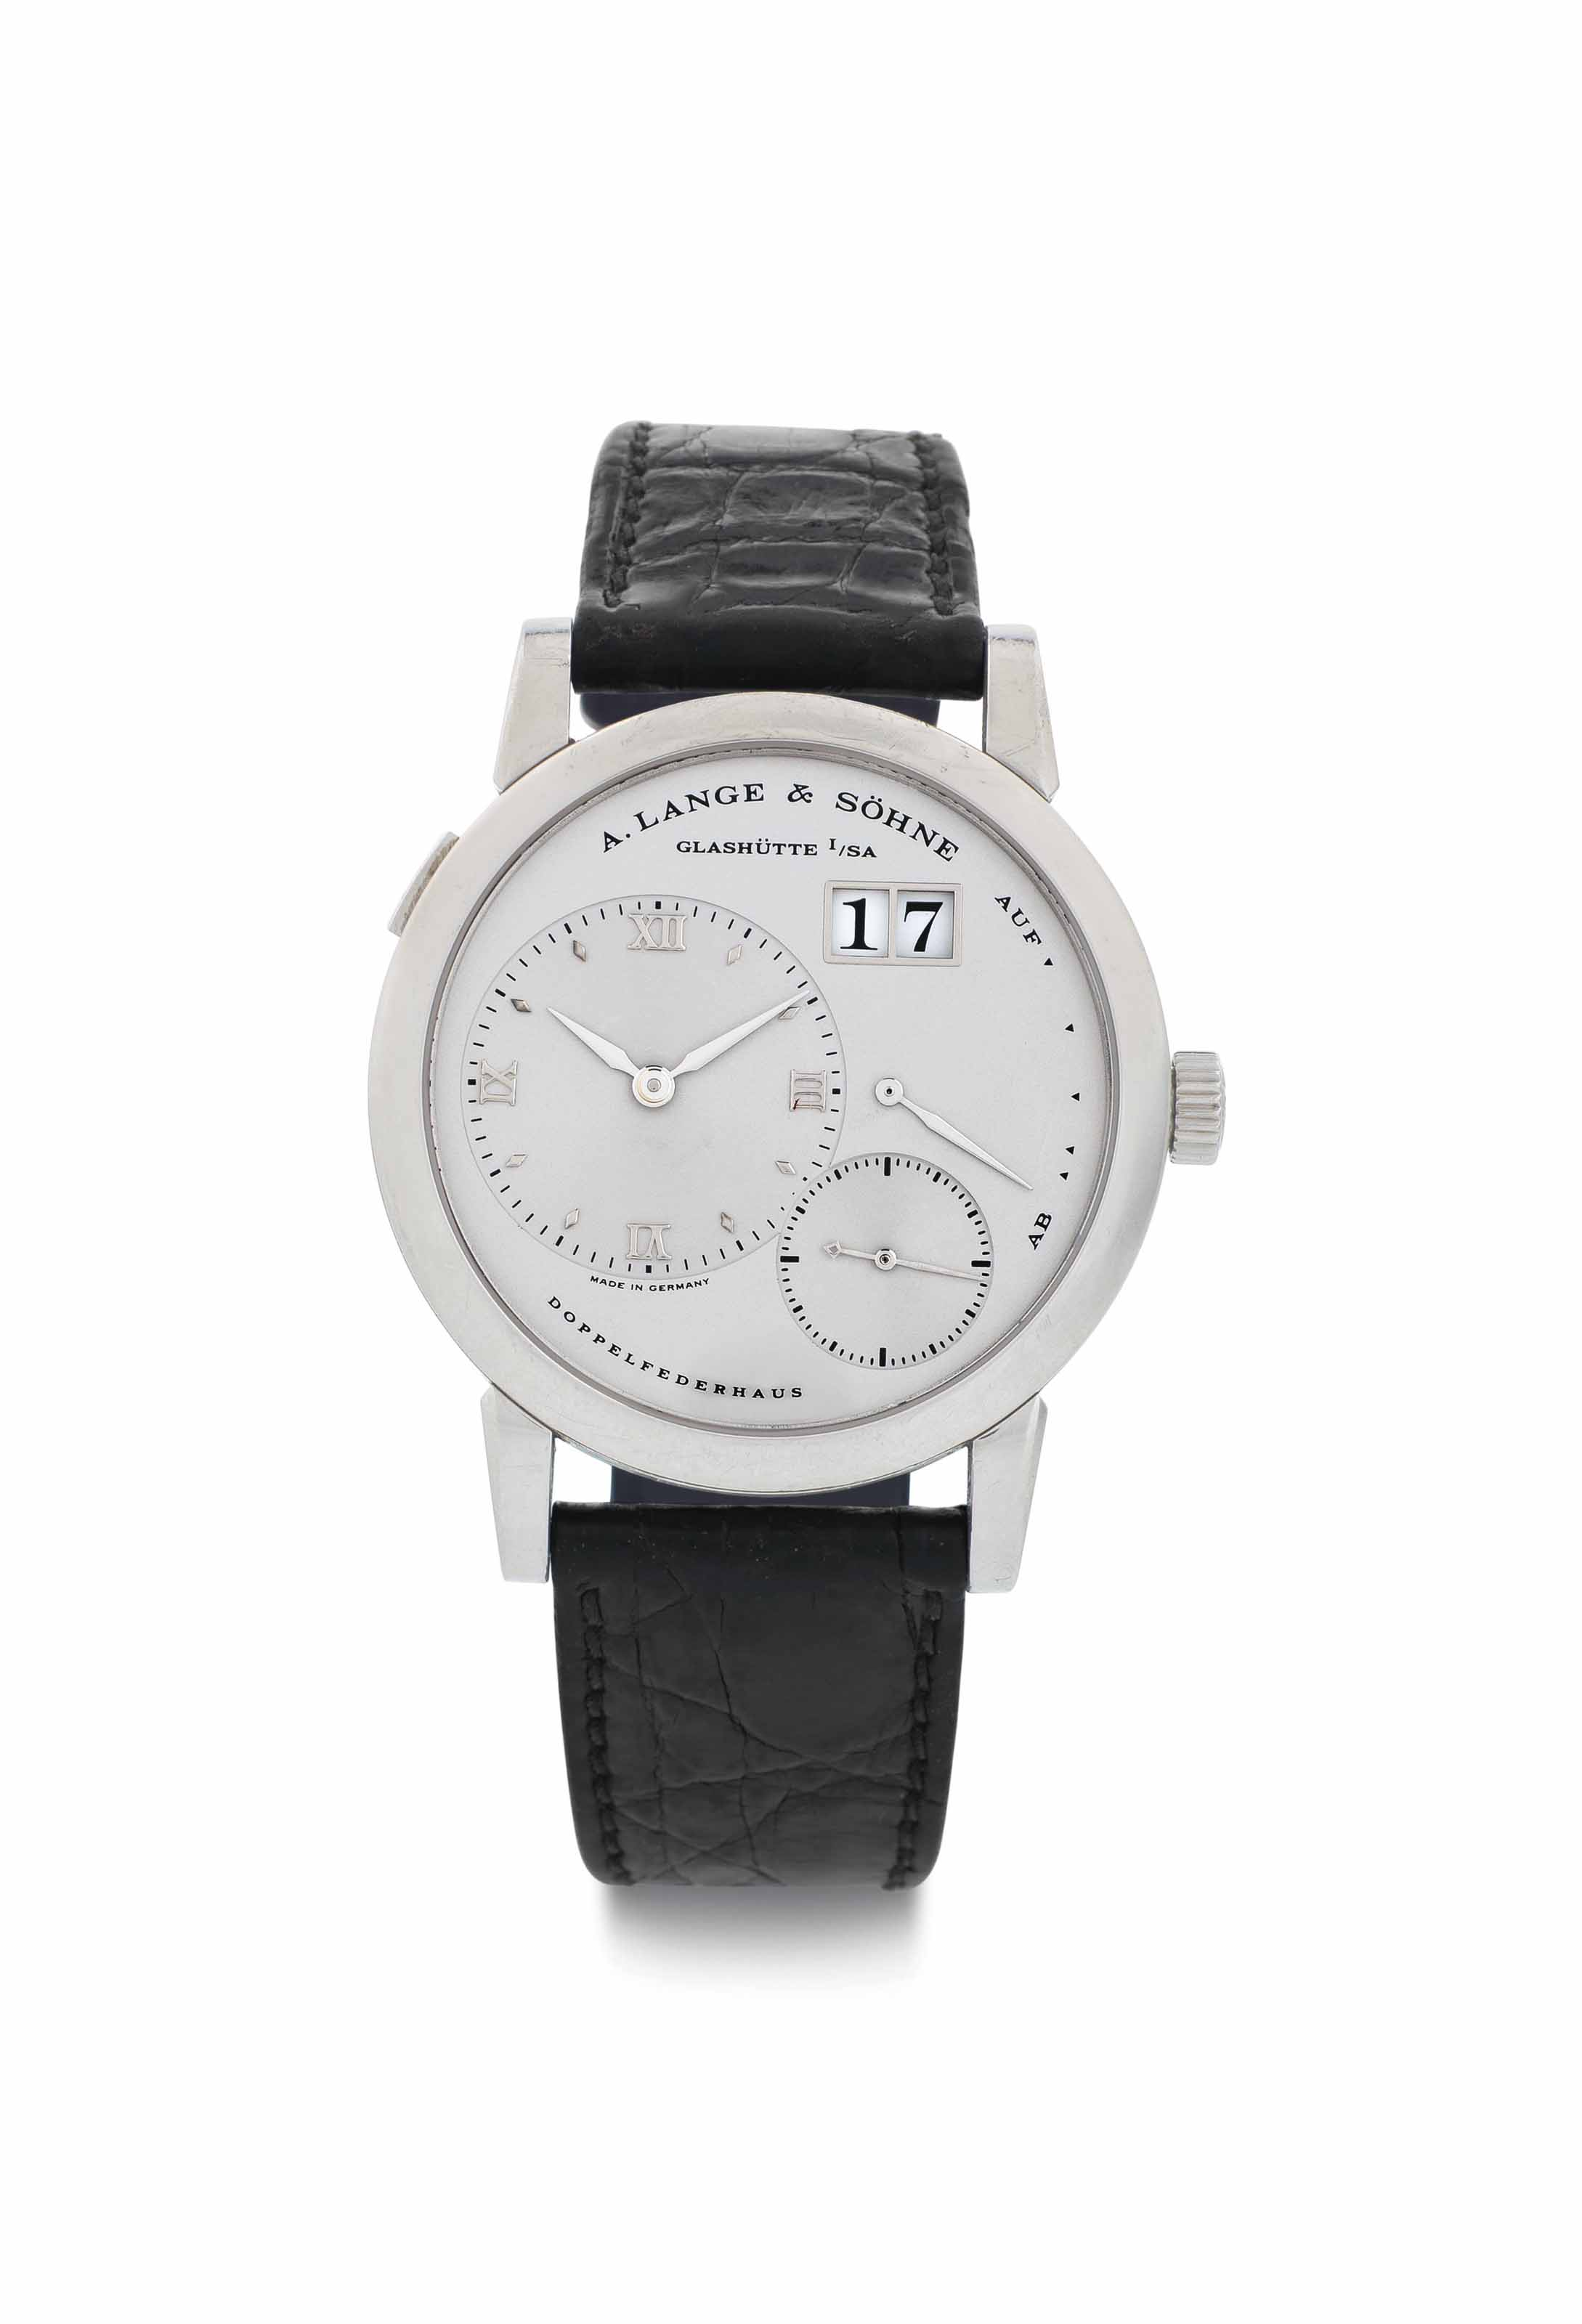 A. Lange & Söhne. A Fine Platinum Twin Barrel Wristwatch with Oversized Date and Power Reserve